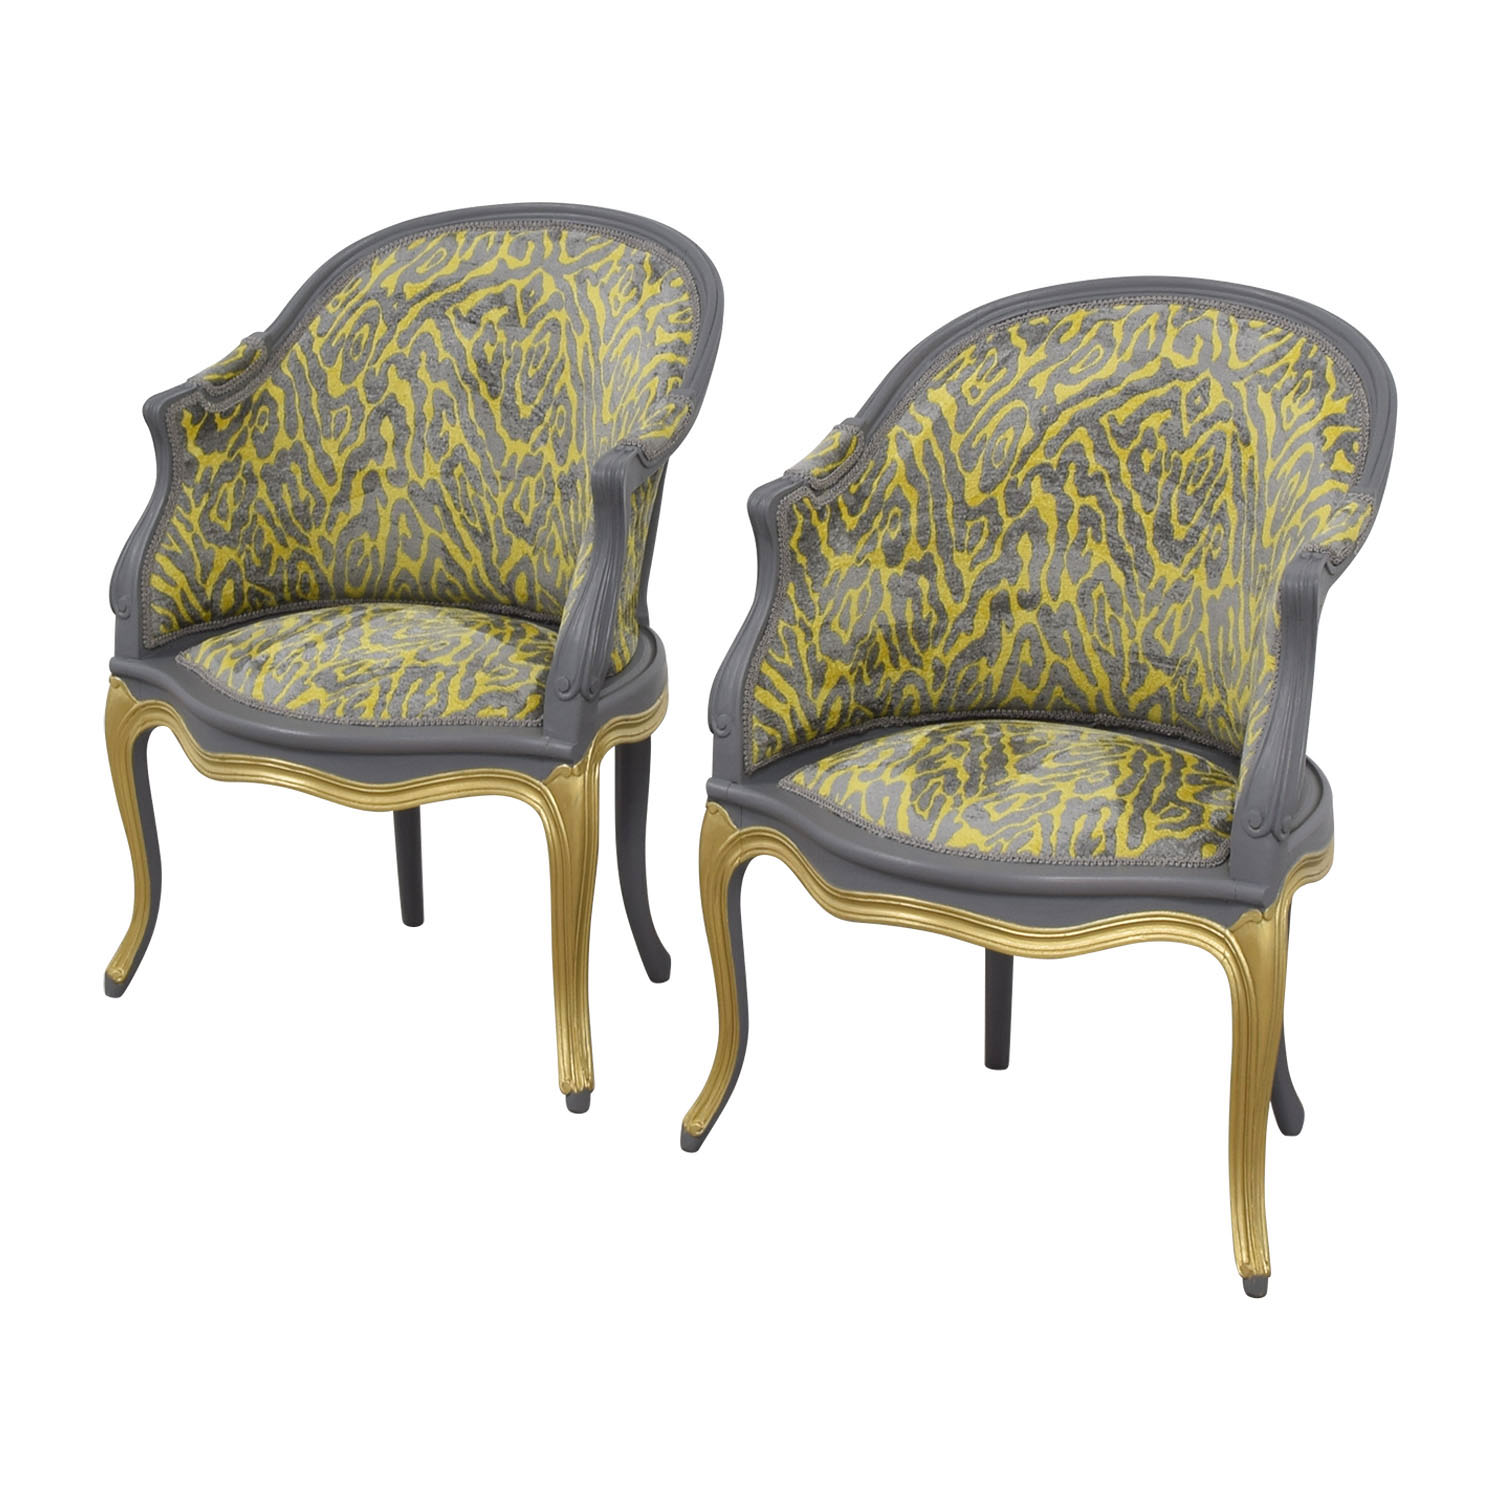 48% OFF Country French Grey and Yellow Accent Chairs Chairs